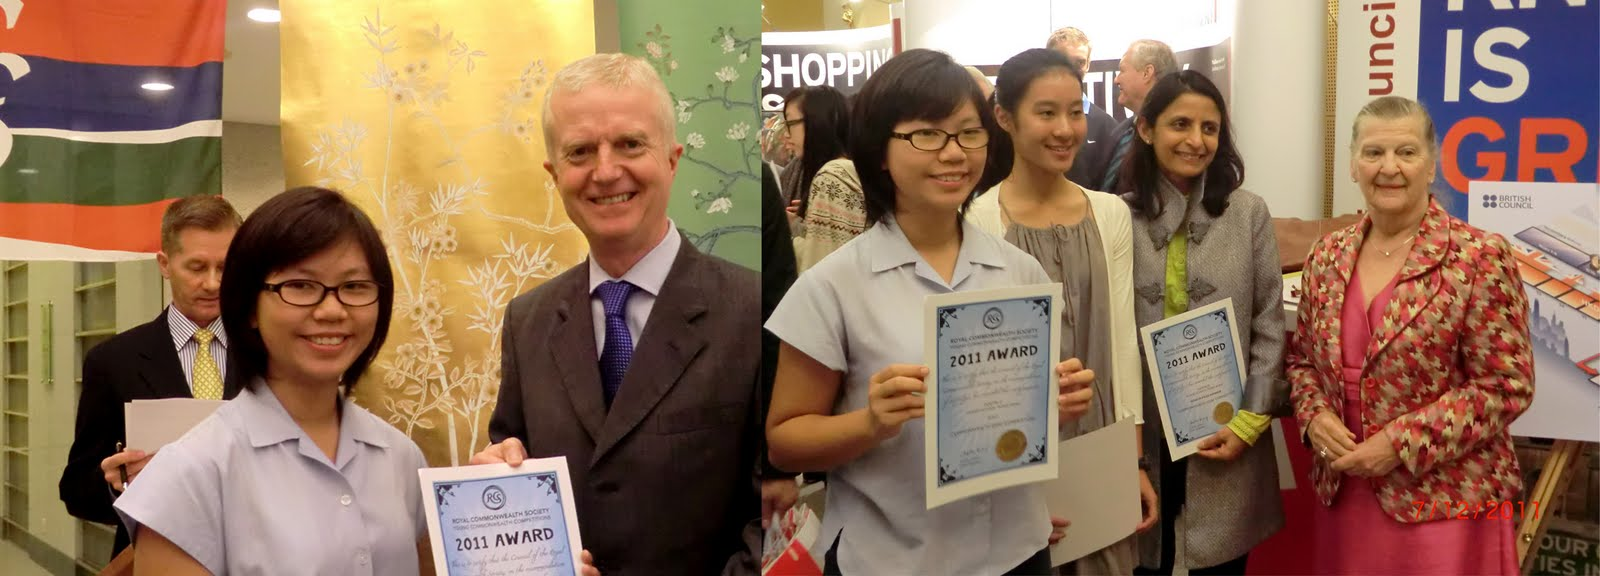 commonwealth essay 2011 singapore Commonwealth essay competition 2011 winners bruce evans loading unsubscribe from bruce evans cancel.